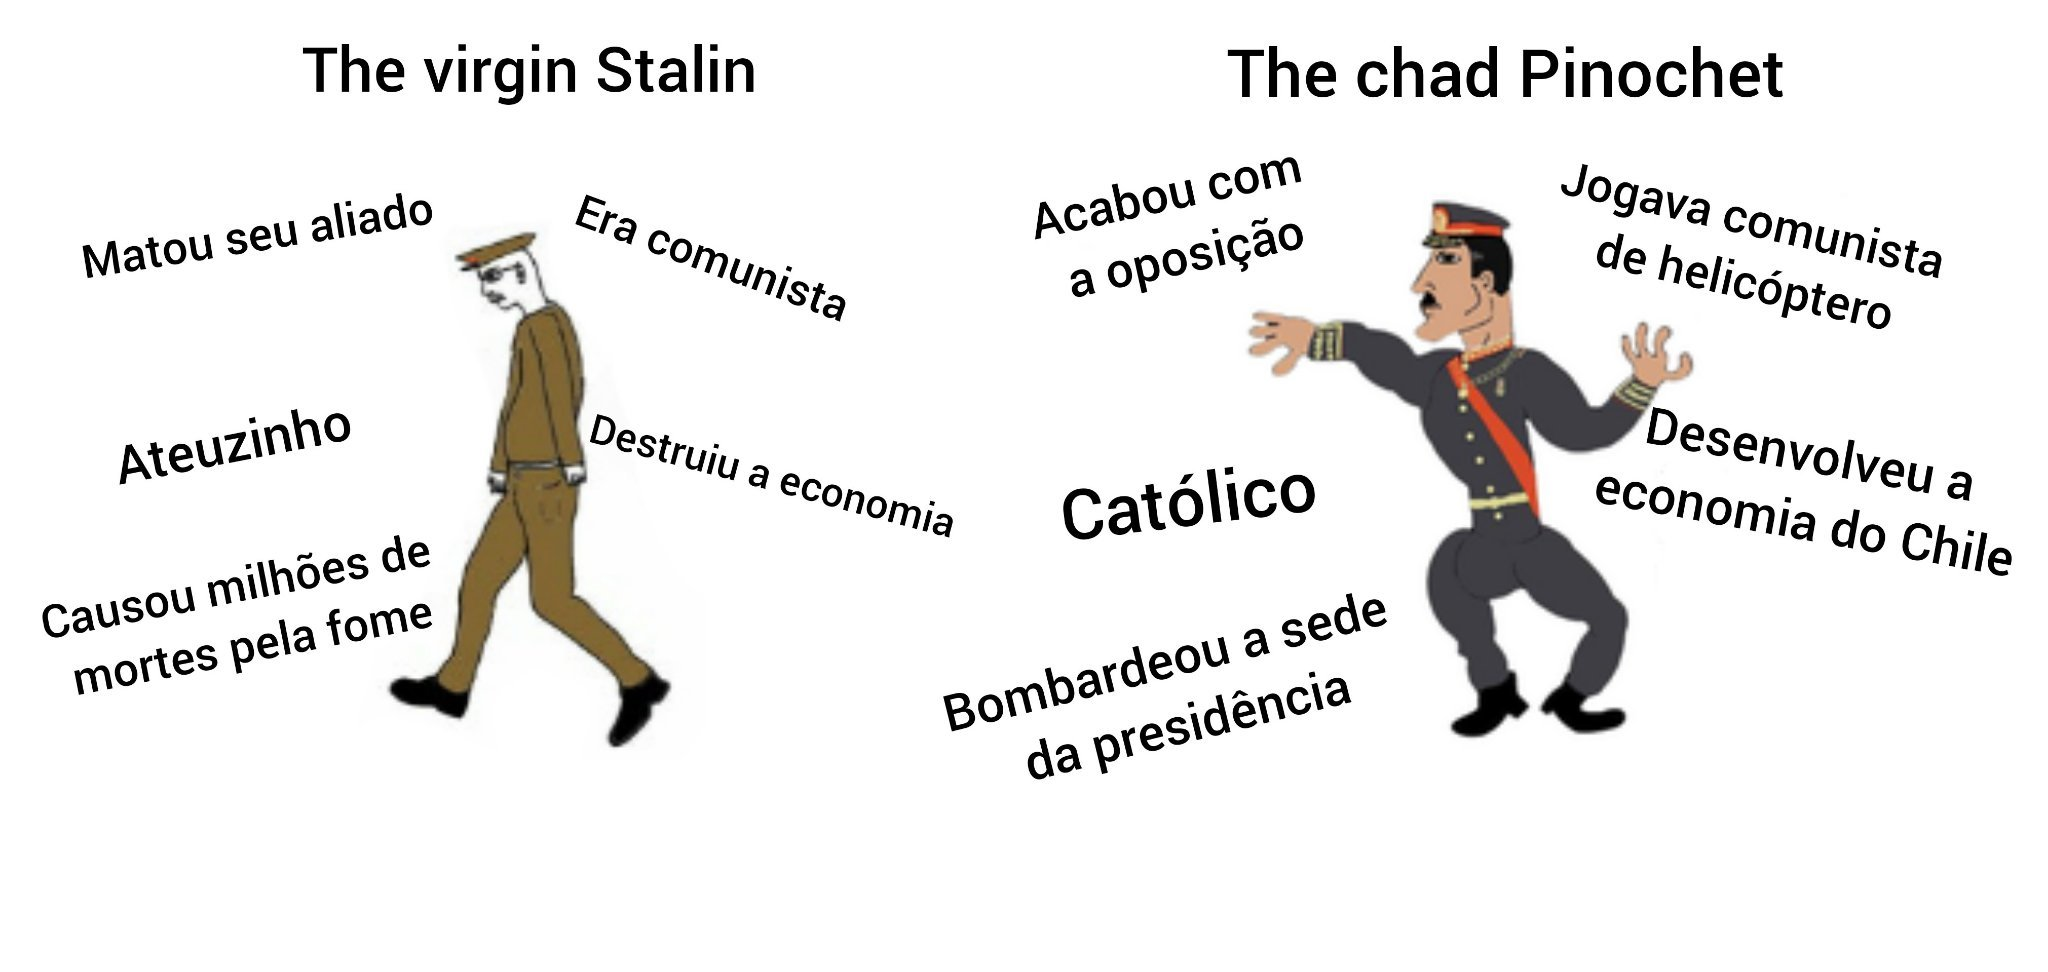 The chad Pinochet - meme